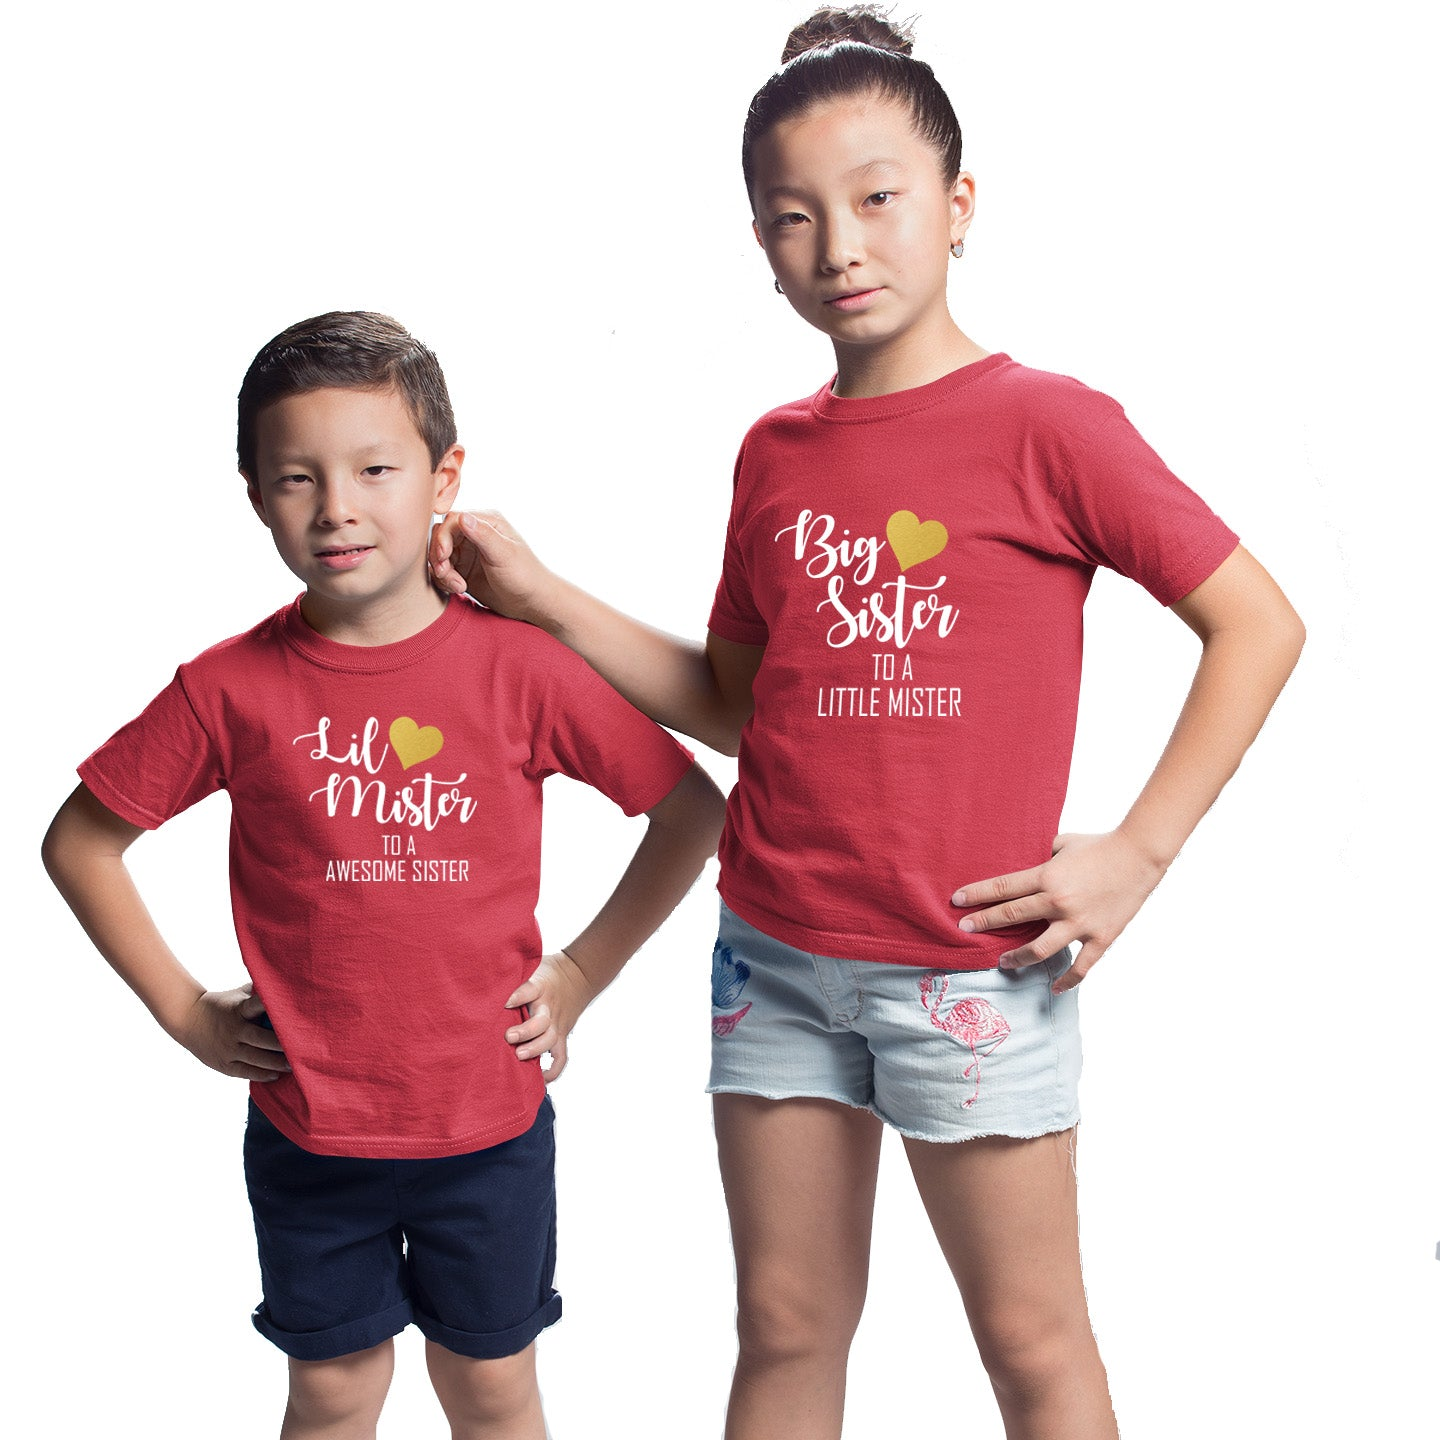 Sprinklecart Big Sister to A Little Mister Little Mister to A Awesome Sister Matching Kids Cotton T Shirts (Red)